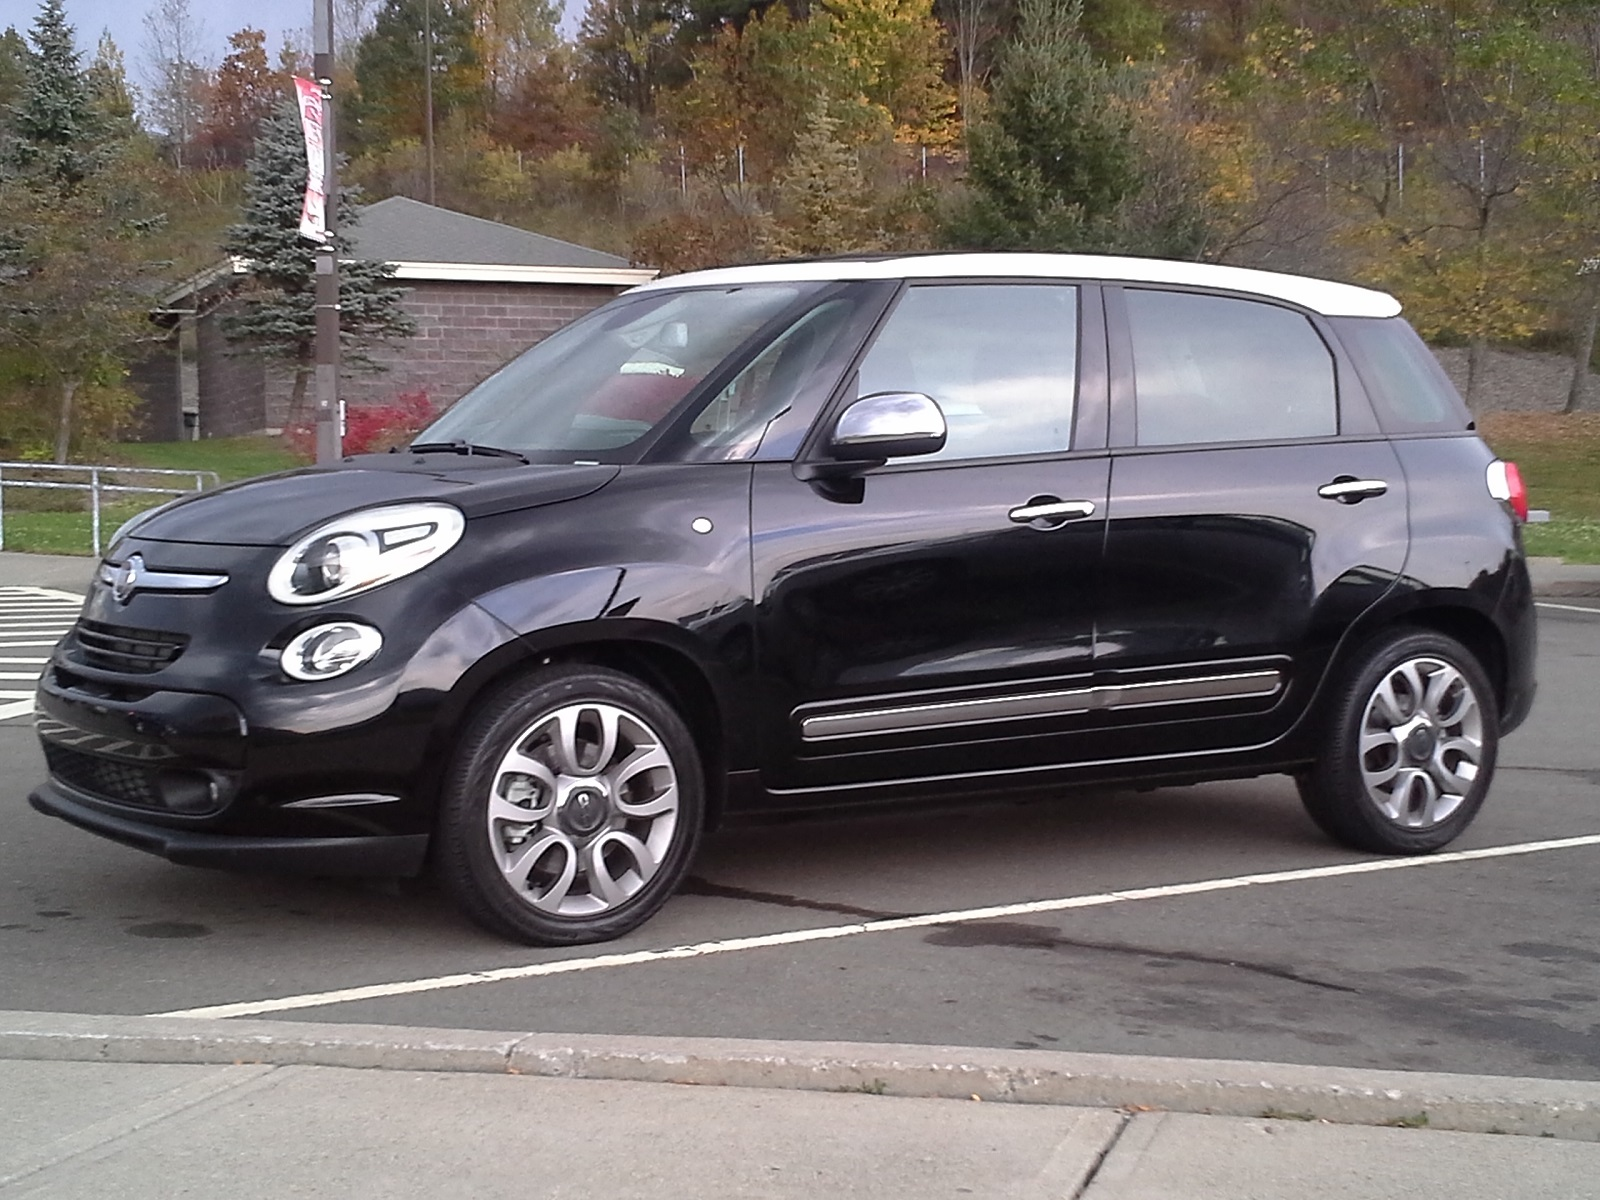 2014 fiat 500l gas mileage test of new tall wagon. Black Bedroom Furniture Sets. Home Design Ideas